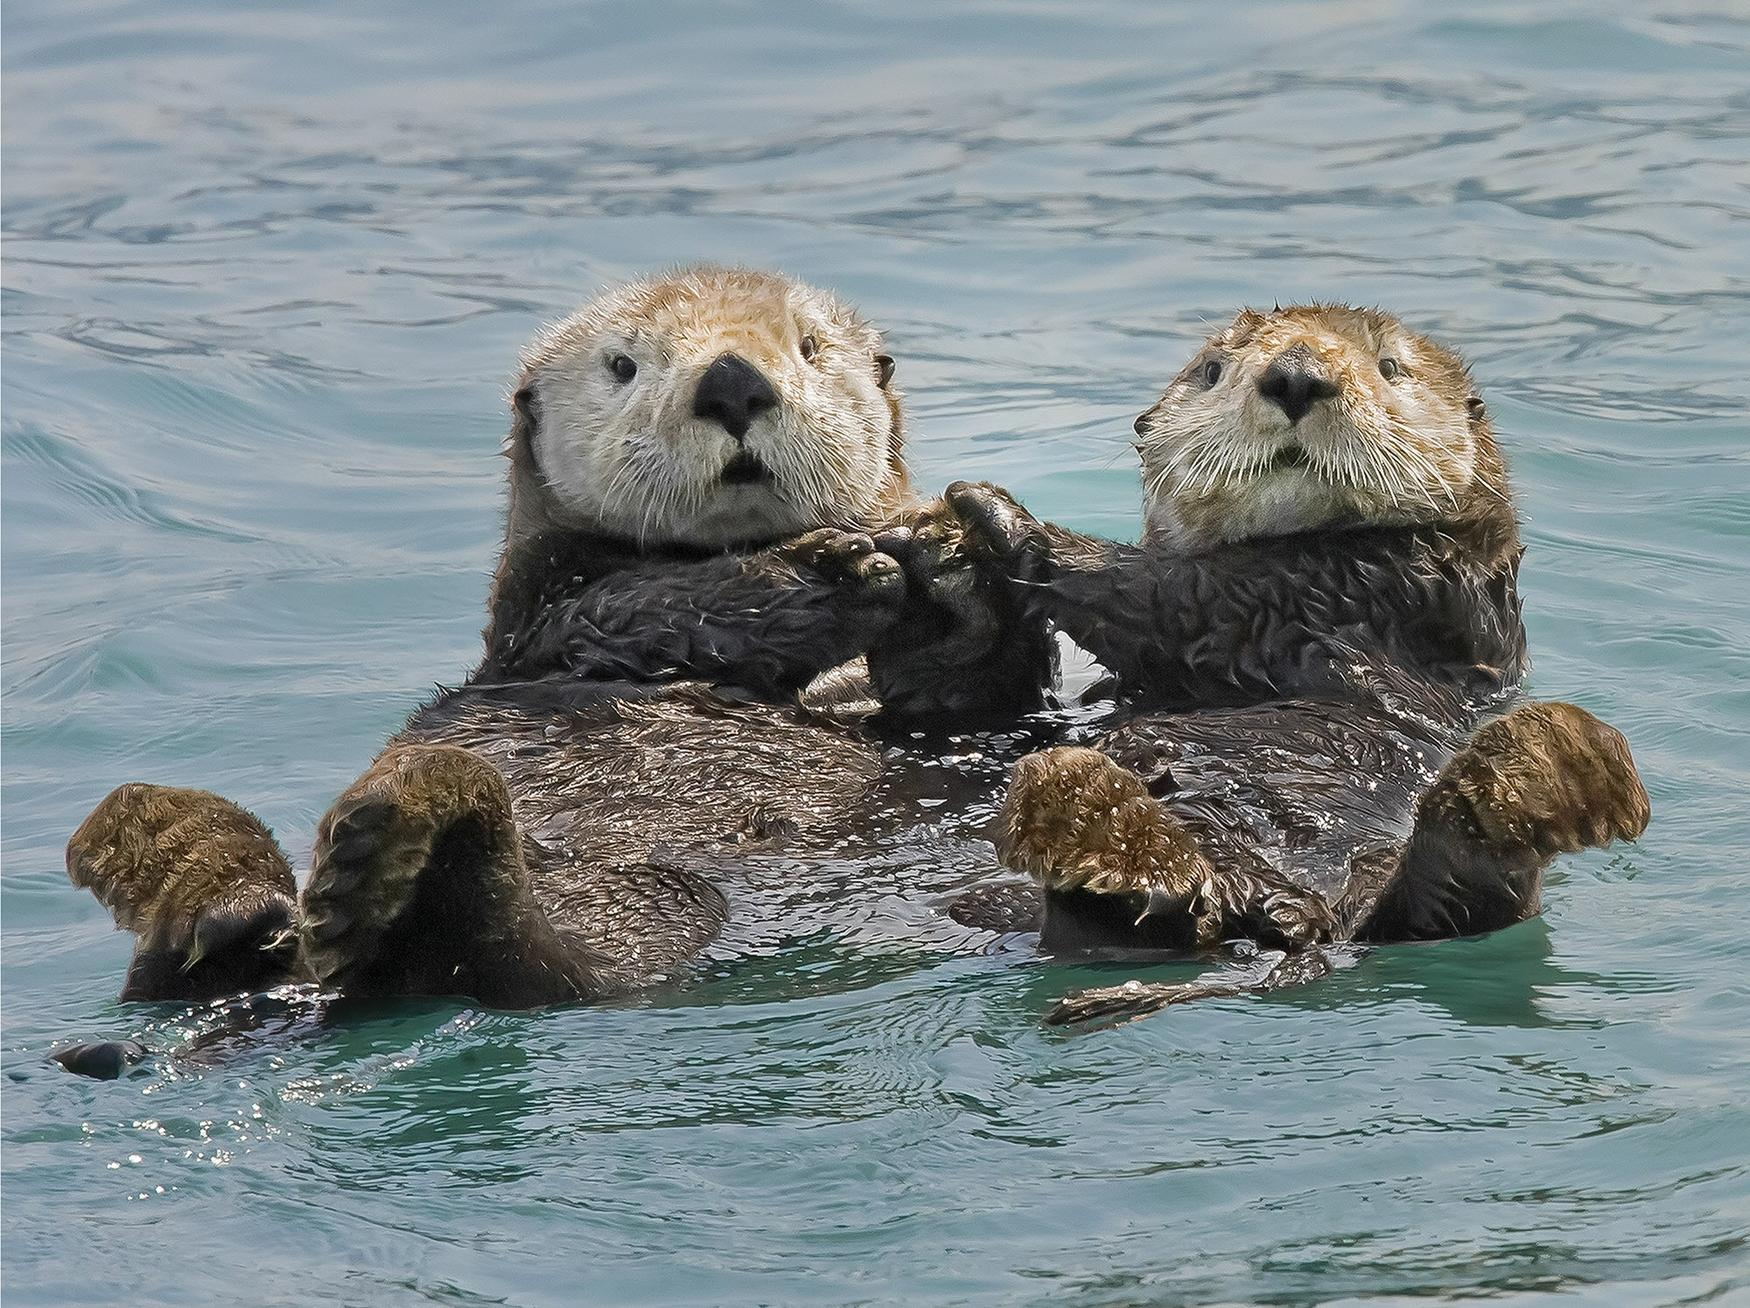 Image of two otters holding hands